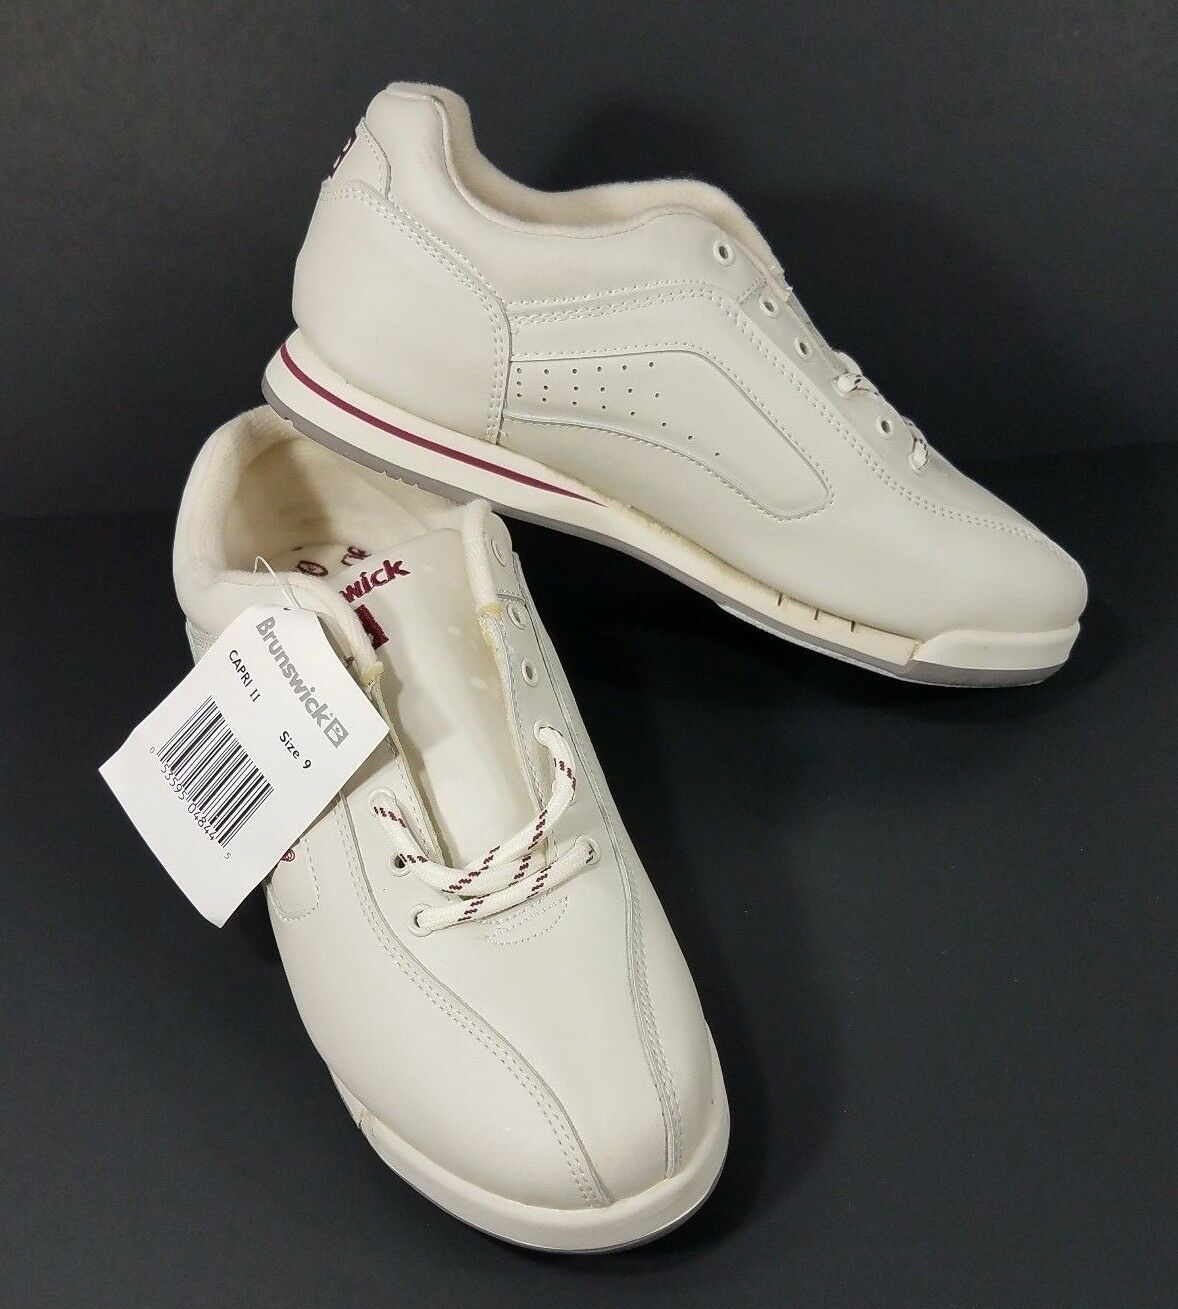 NWT Brunswick Capri II  Blanc  lace up comfort bowling  chaussures  ladies  Femme  Taille 9